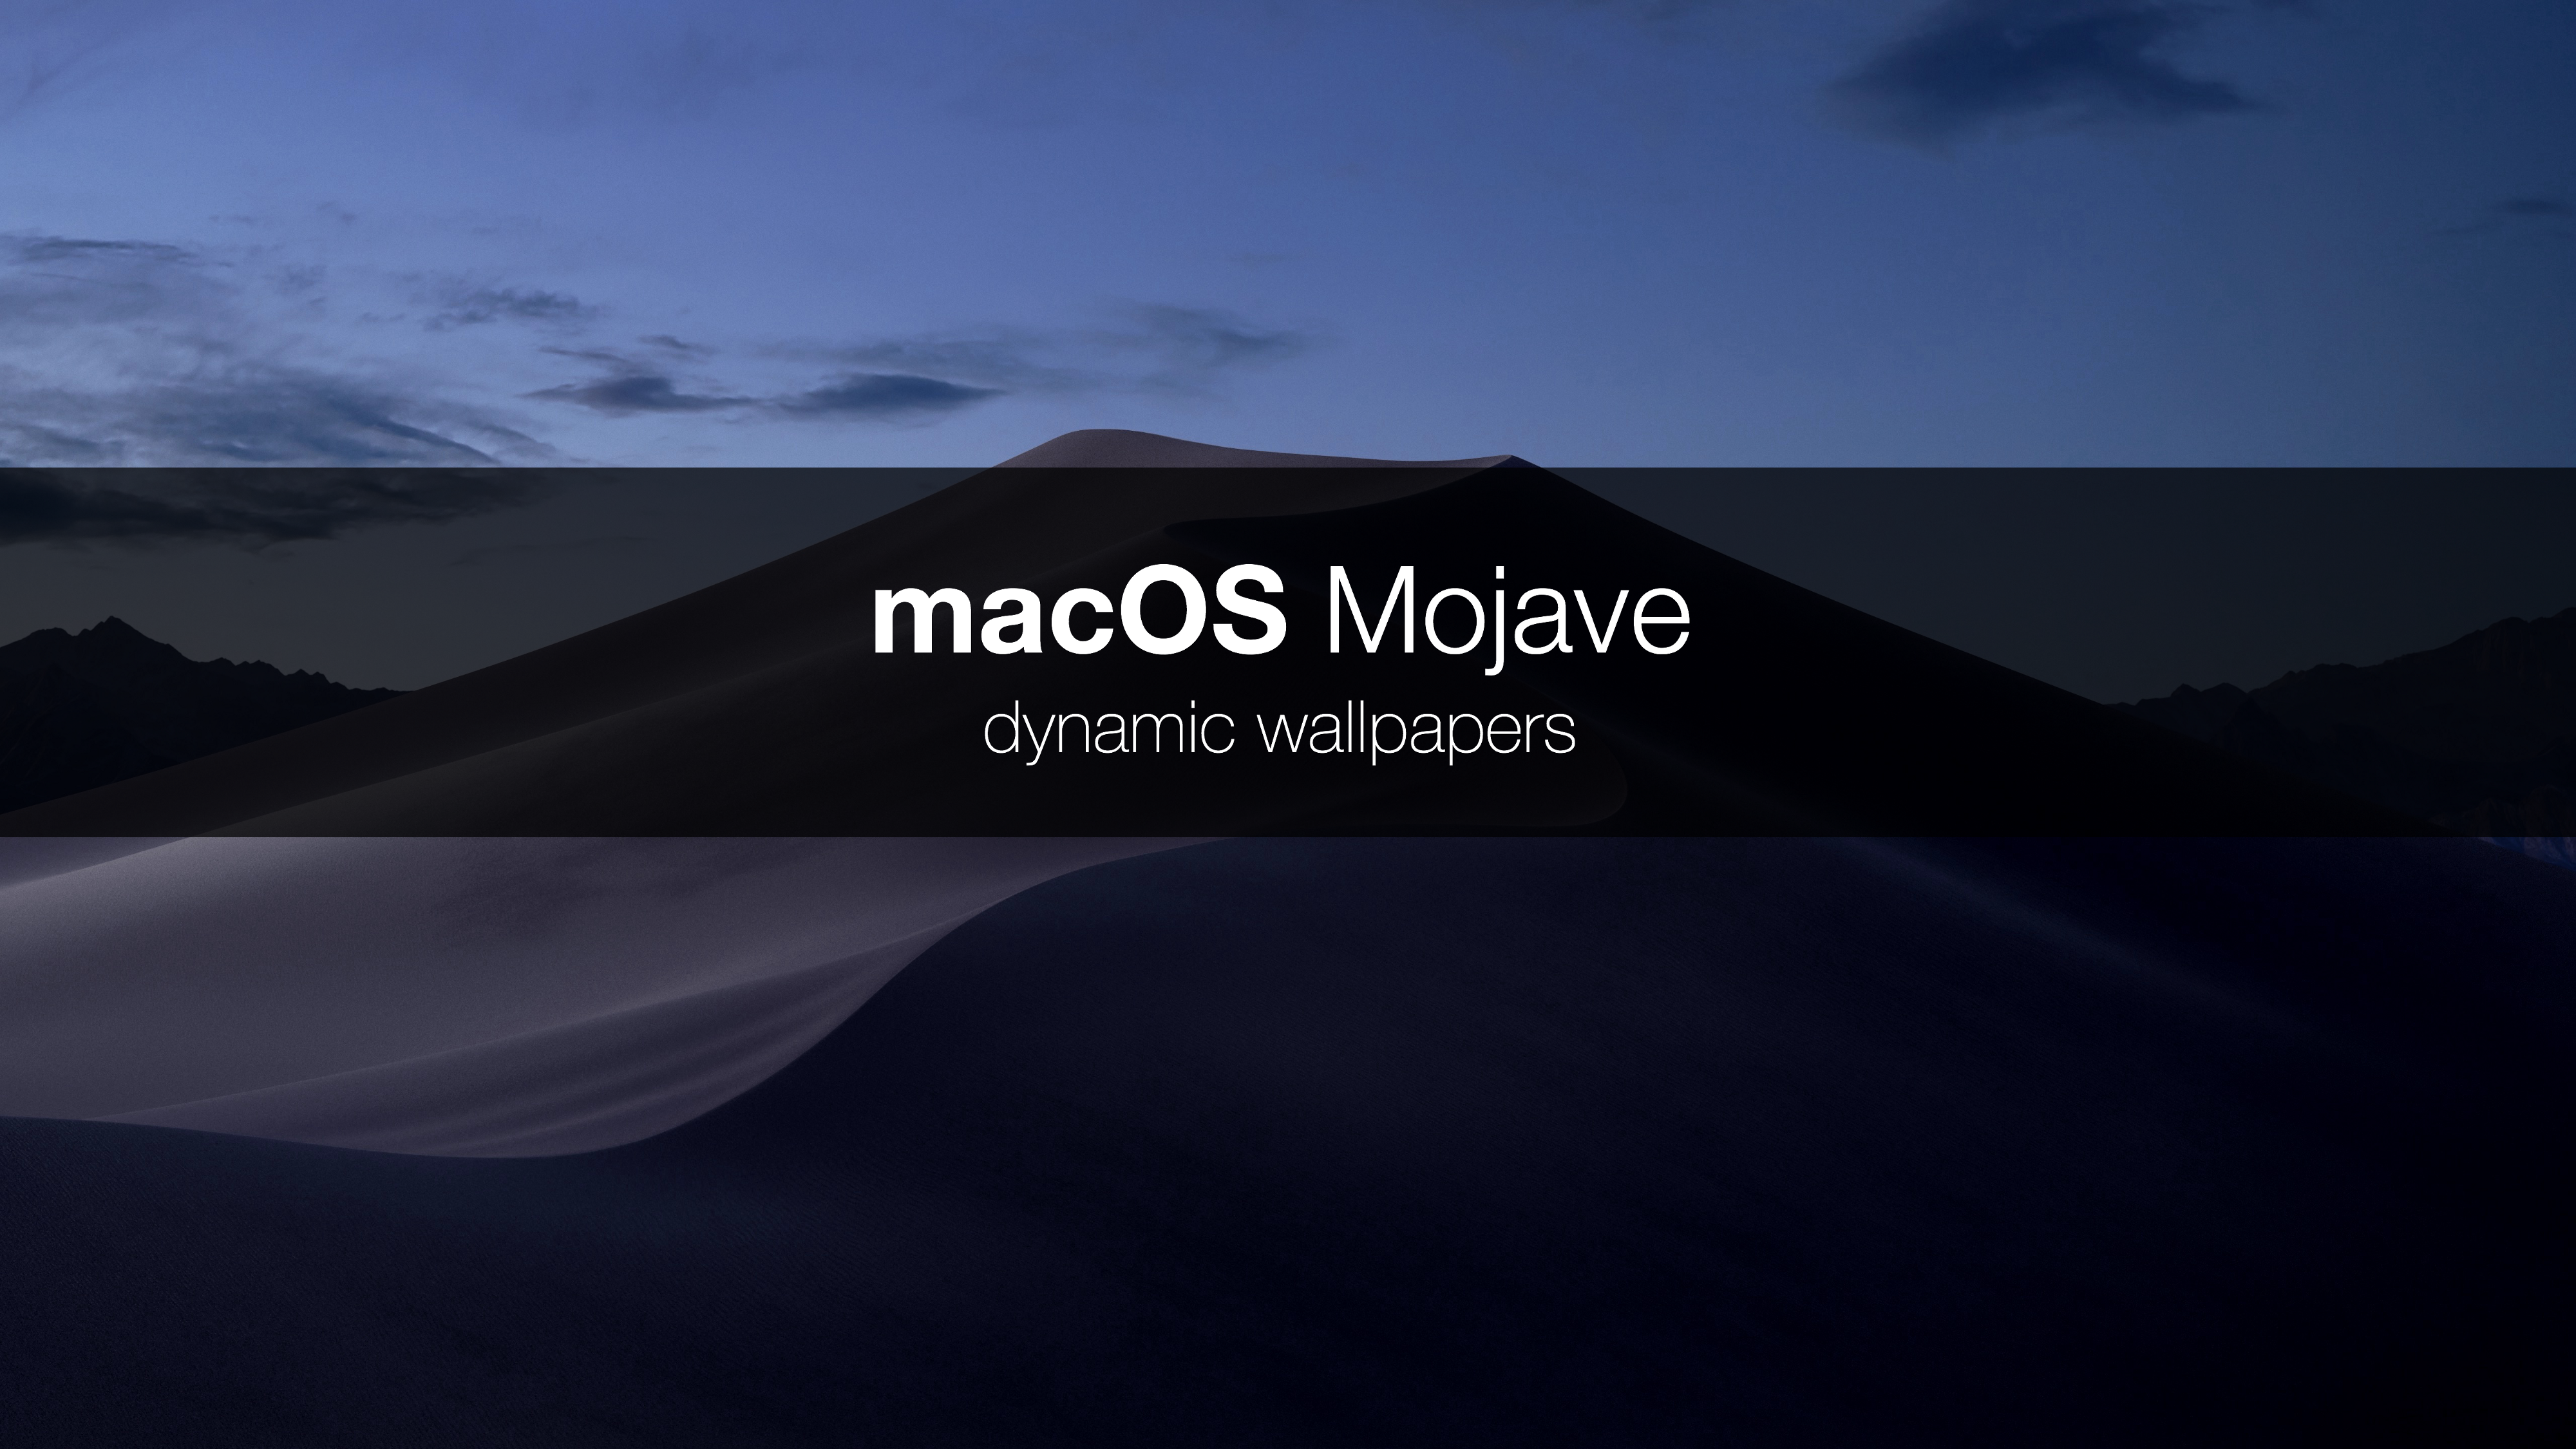 macOS Mojave dynamic wallpaper - ITNEXT